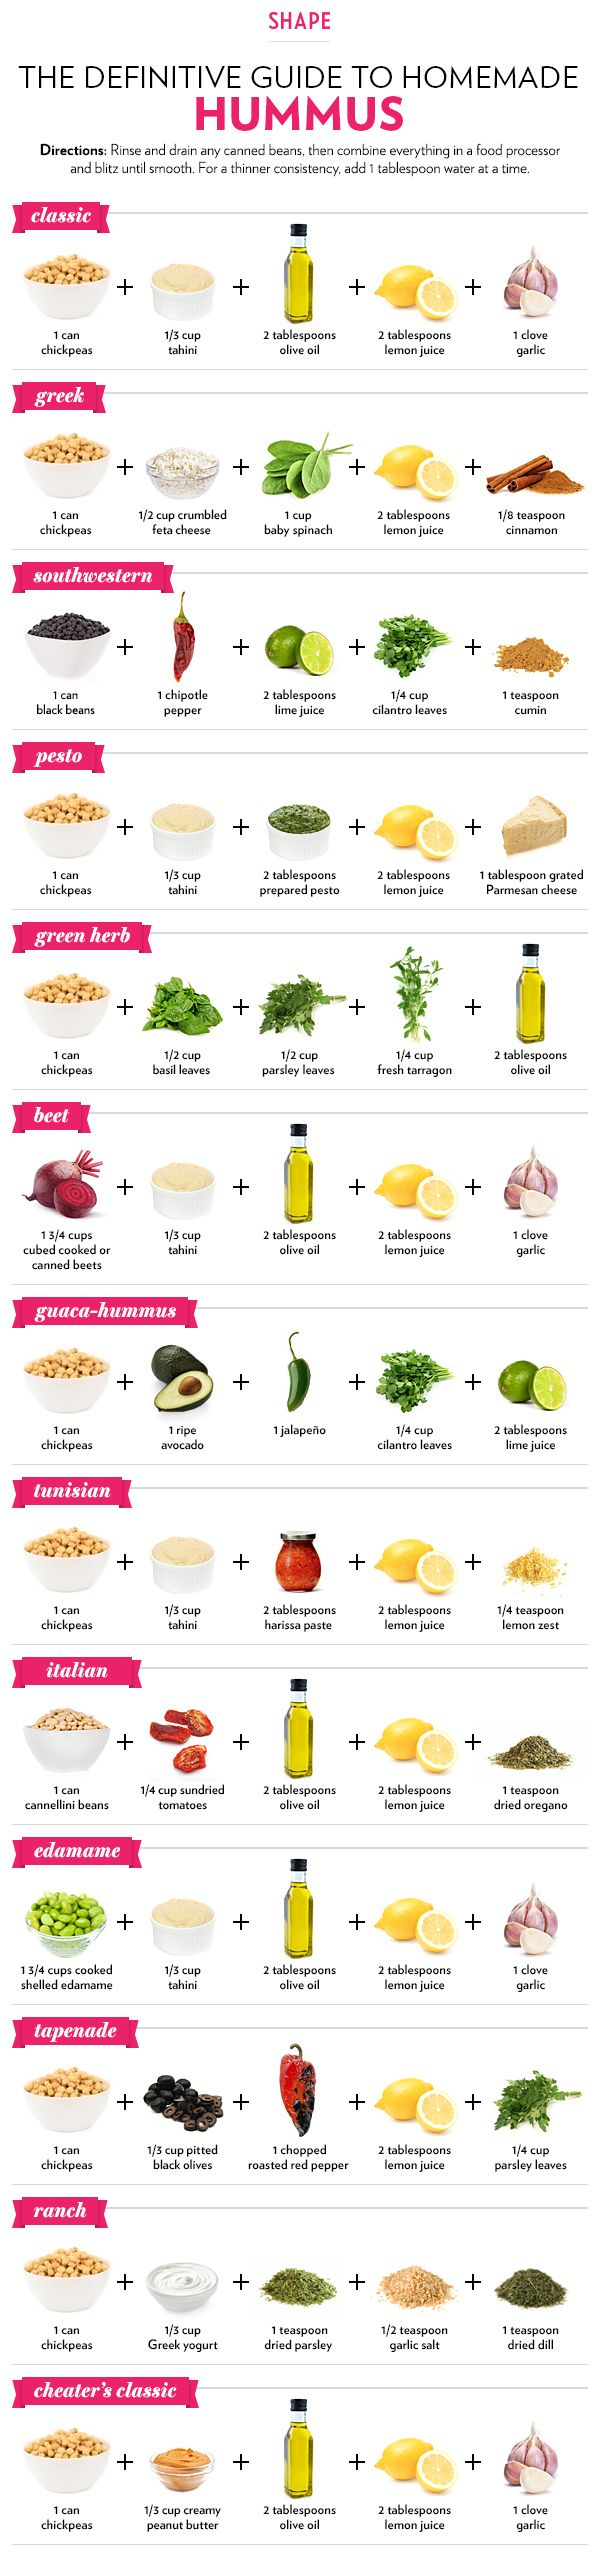 How to make hummus from 13 different forms.